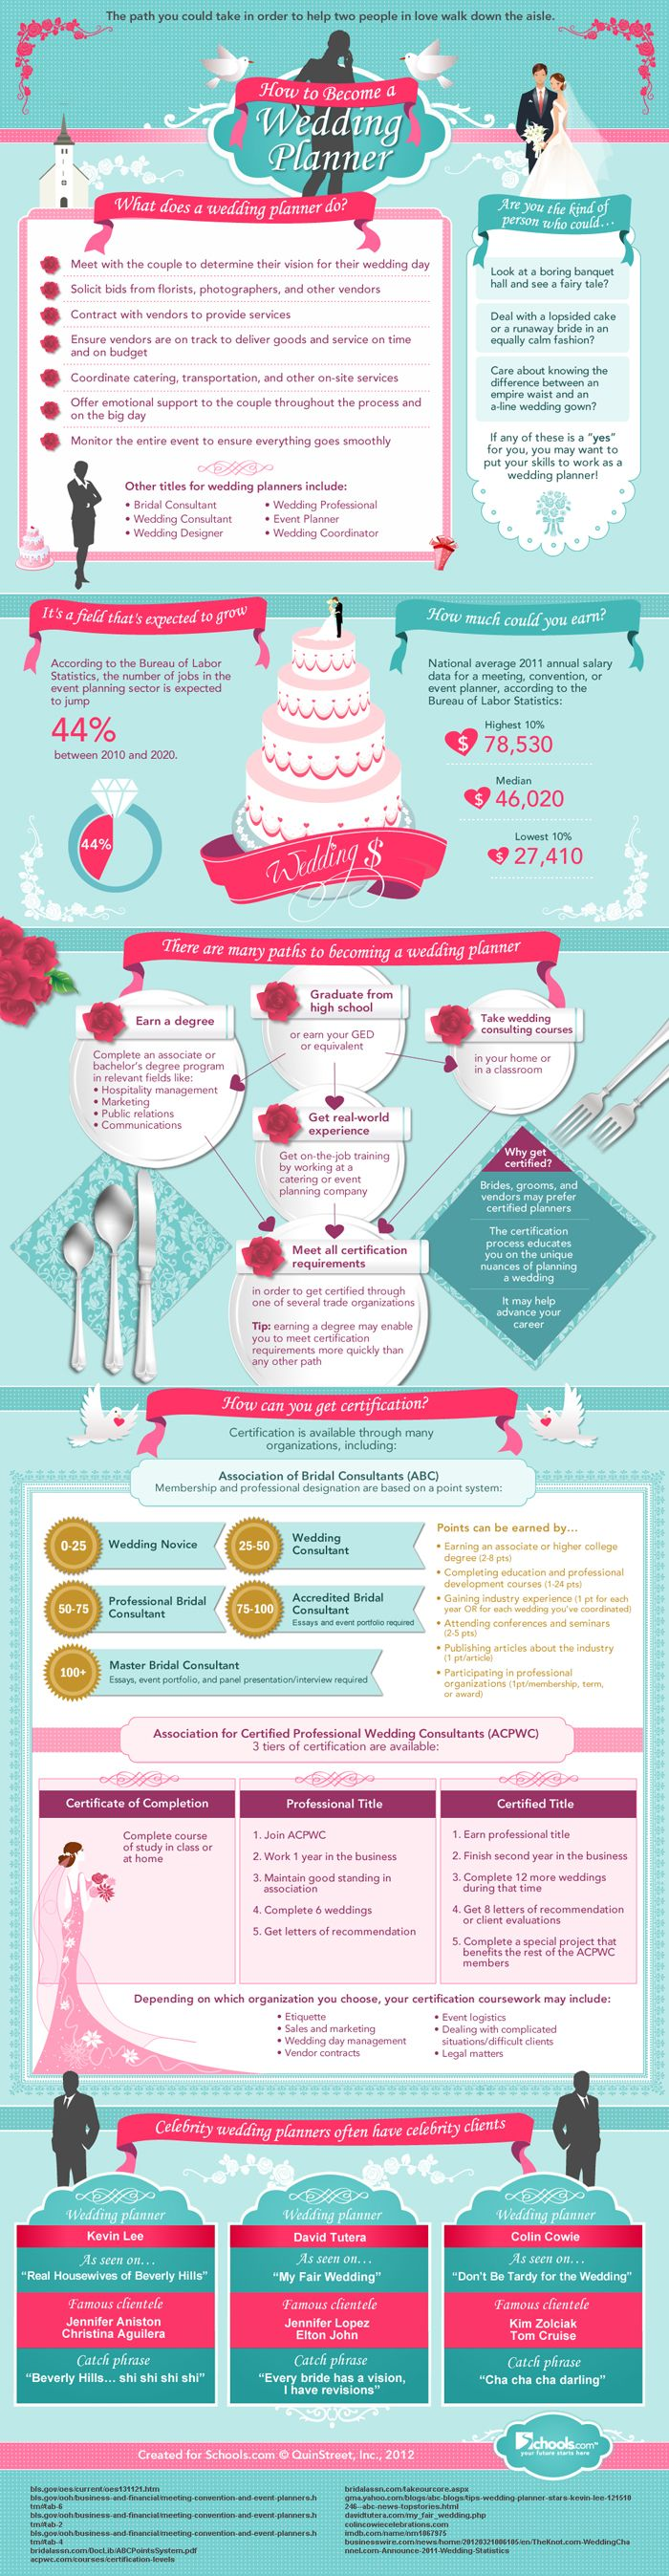 Best 25 Wedding Planner Salary Ideas On Pinterest Event Planners And Planning Business